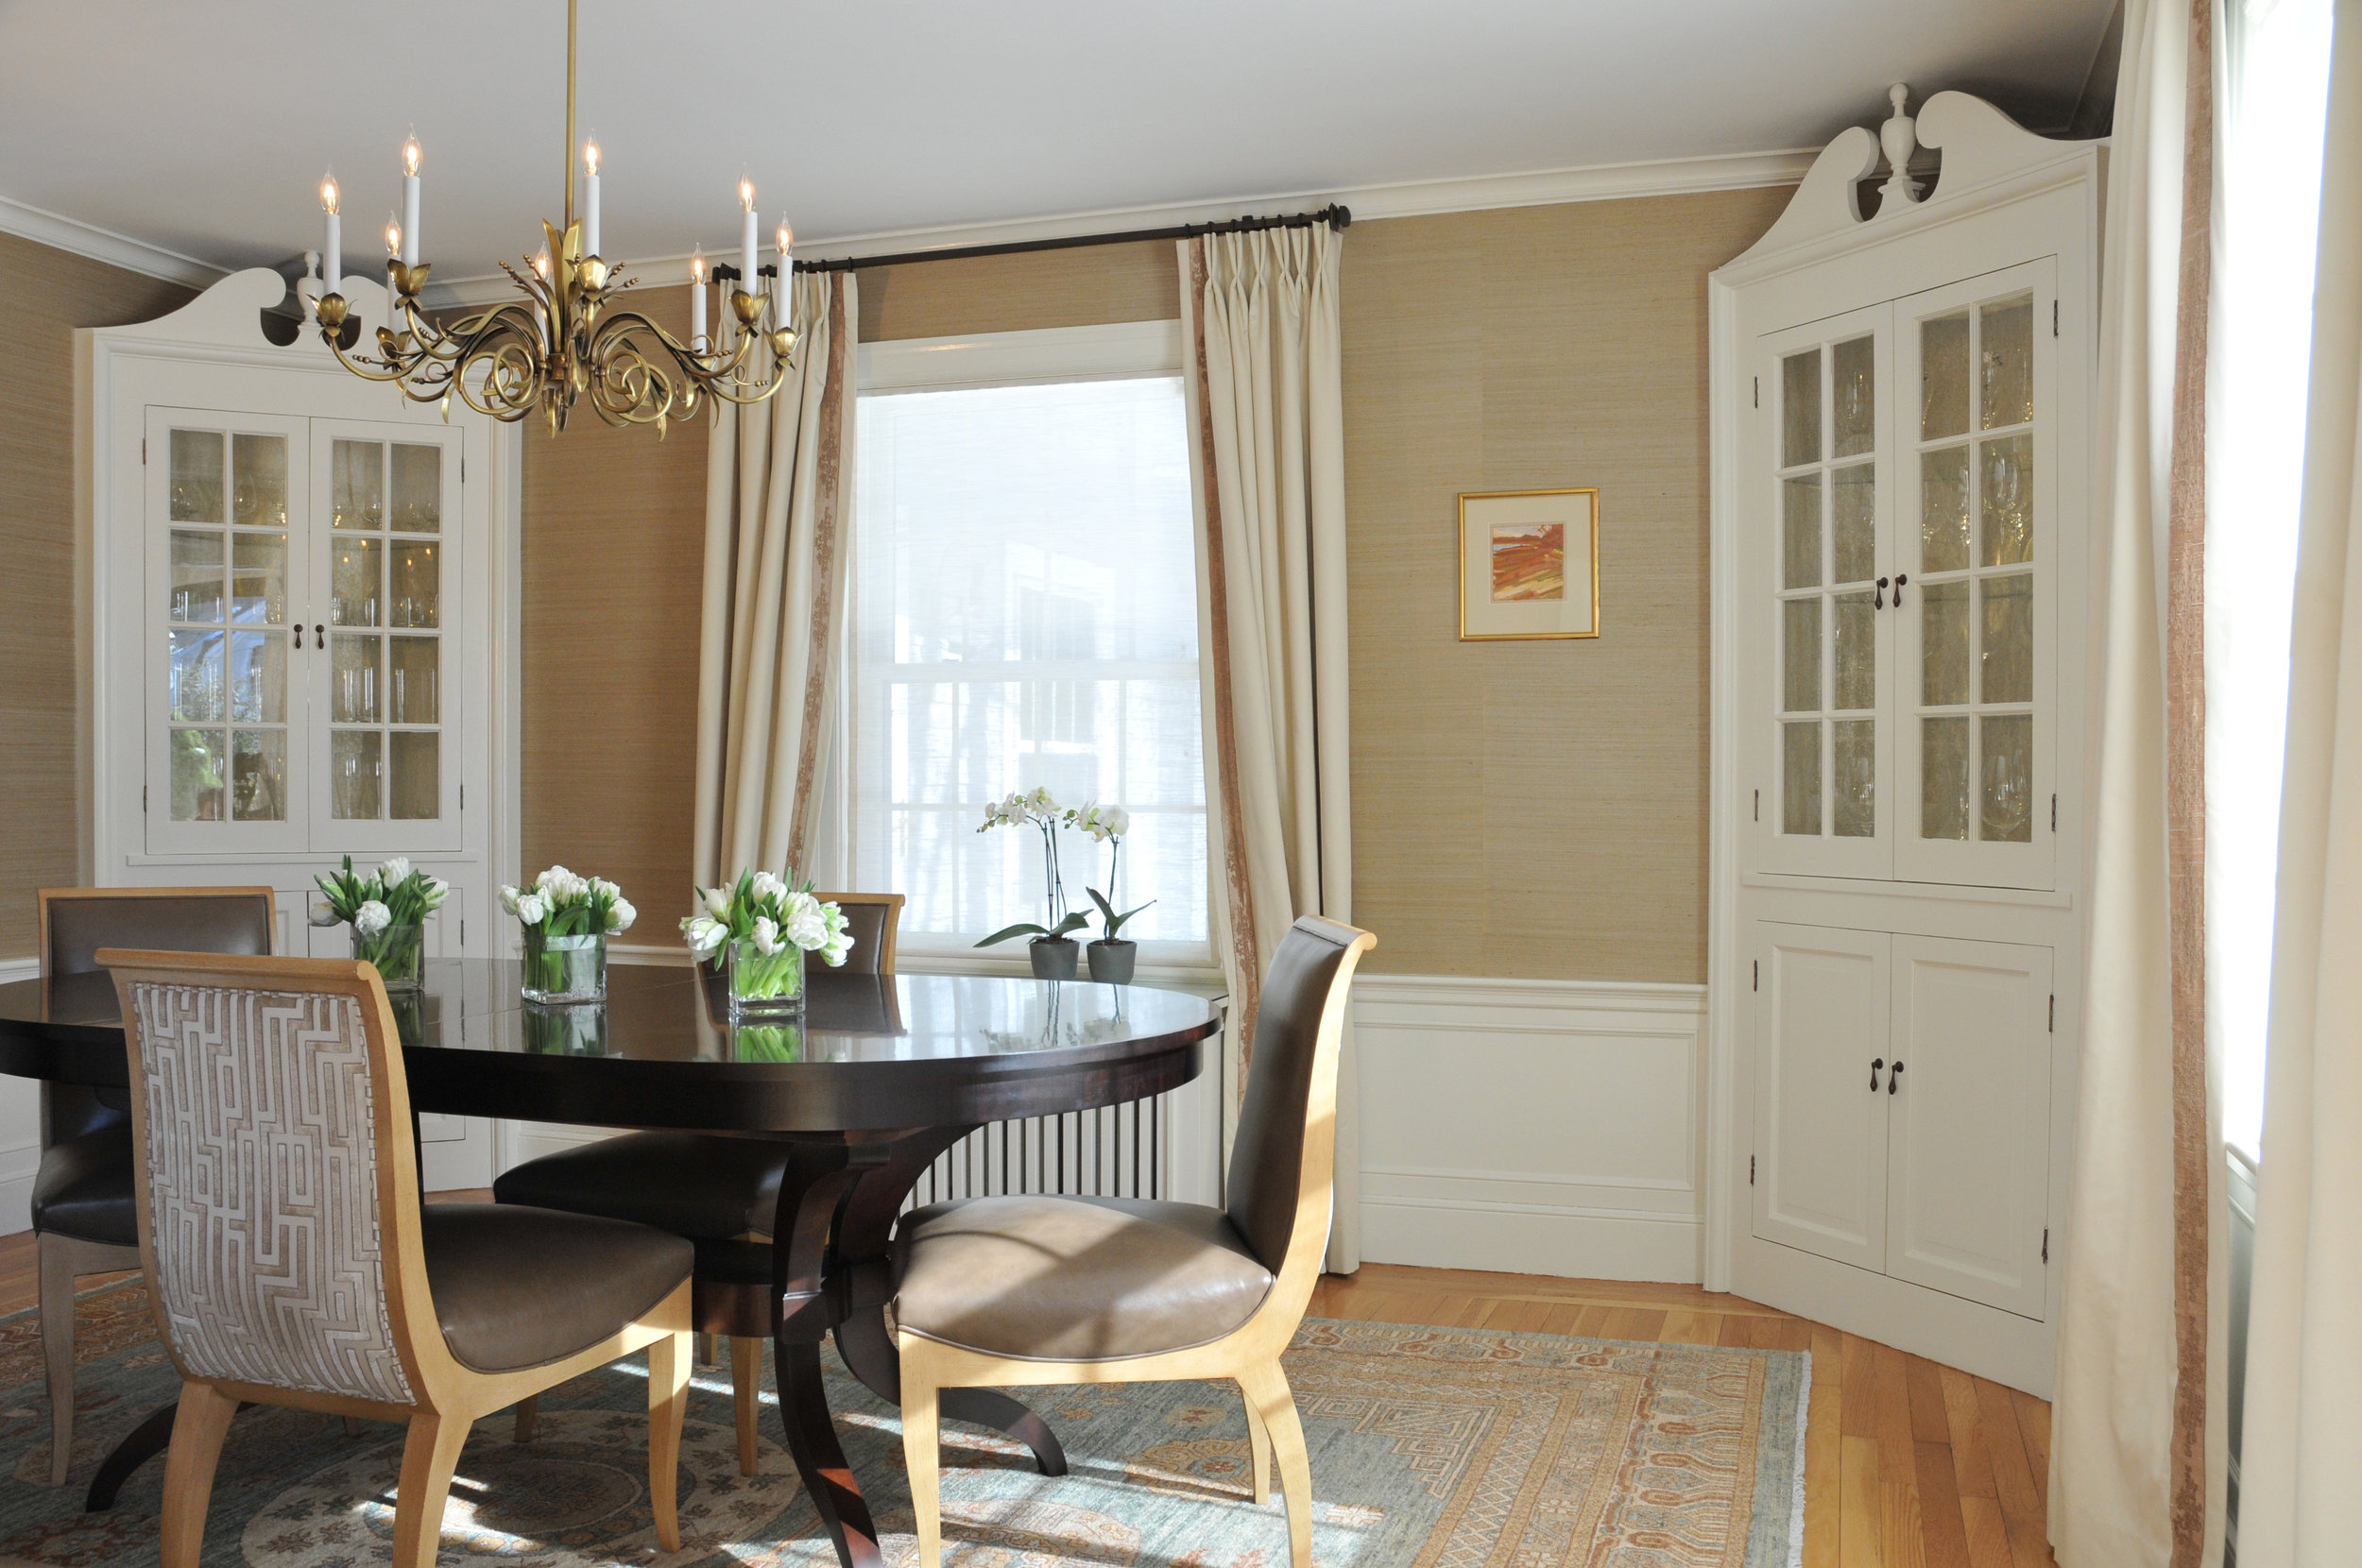 Dining Table with China Cabinets.jpg